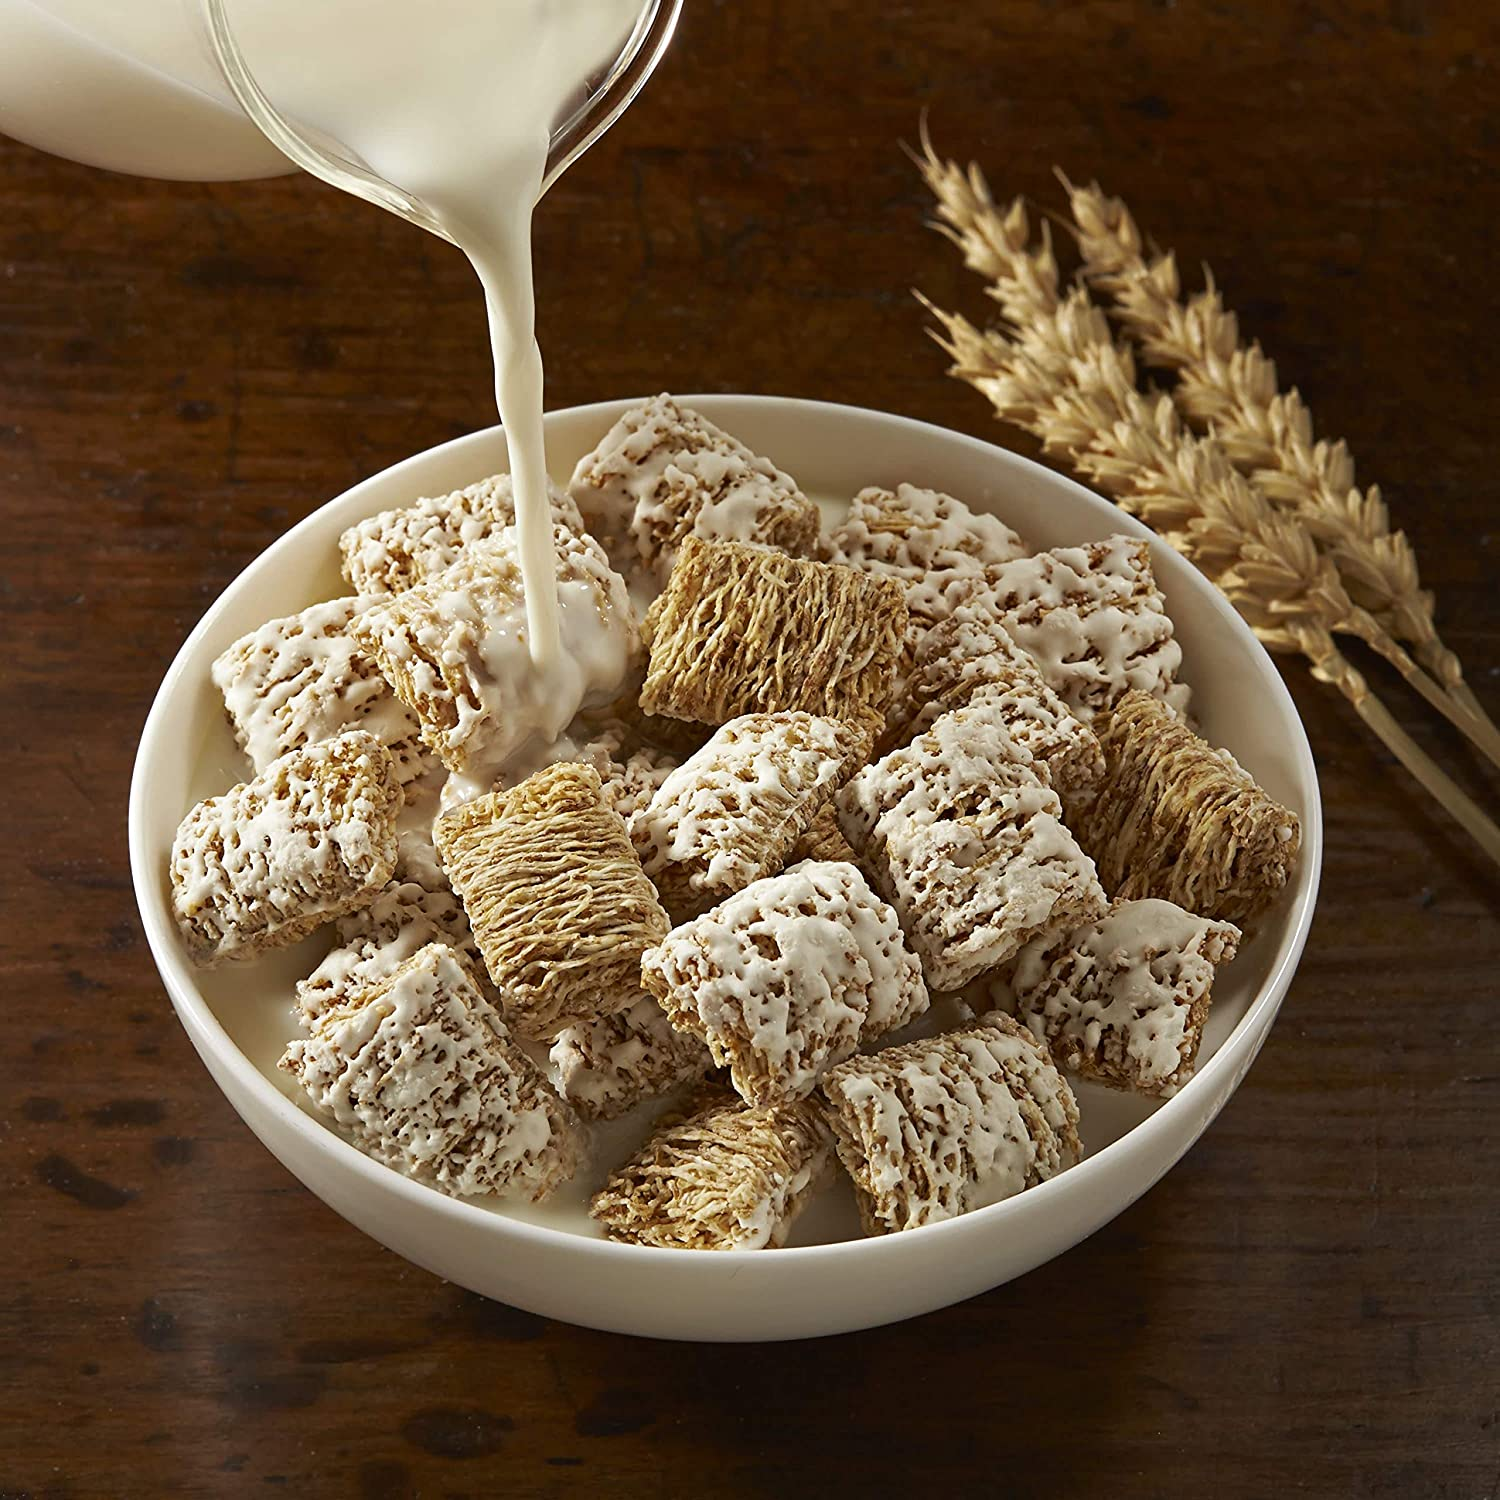 Amazon.com: Kelloggs Breakfast Cereal, Frosted Mini-Wheats, Original, Low Fat, Excellent Source of Fiber, 18 oz Box: